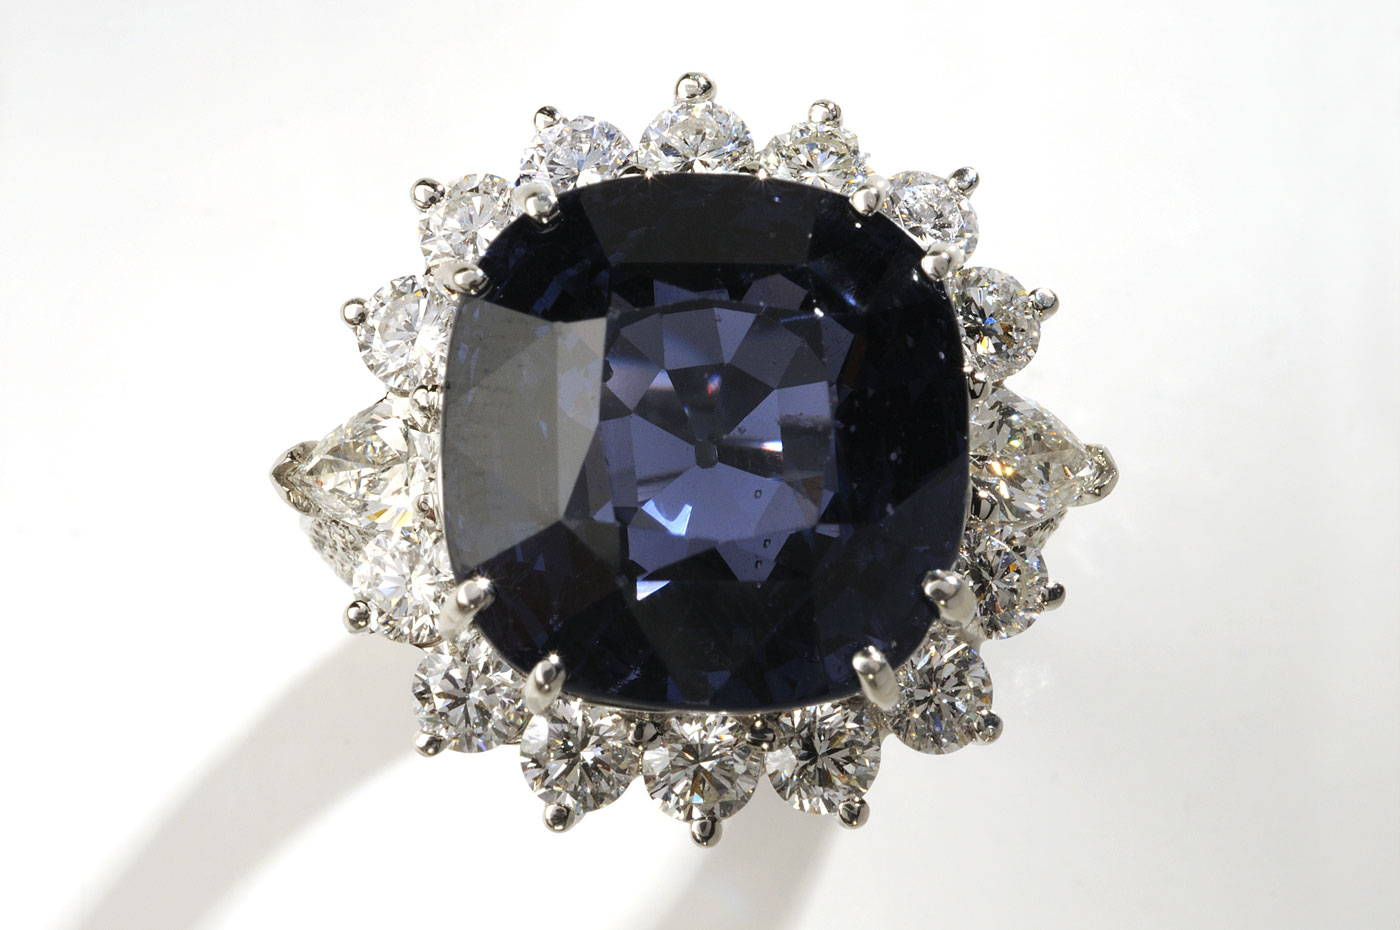 Image of Duchess Sapphire Ring in the Hall of Gems